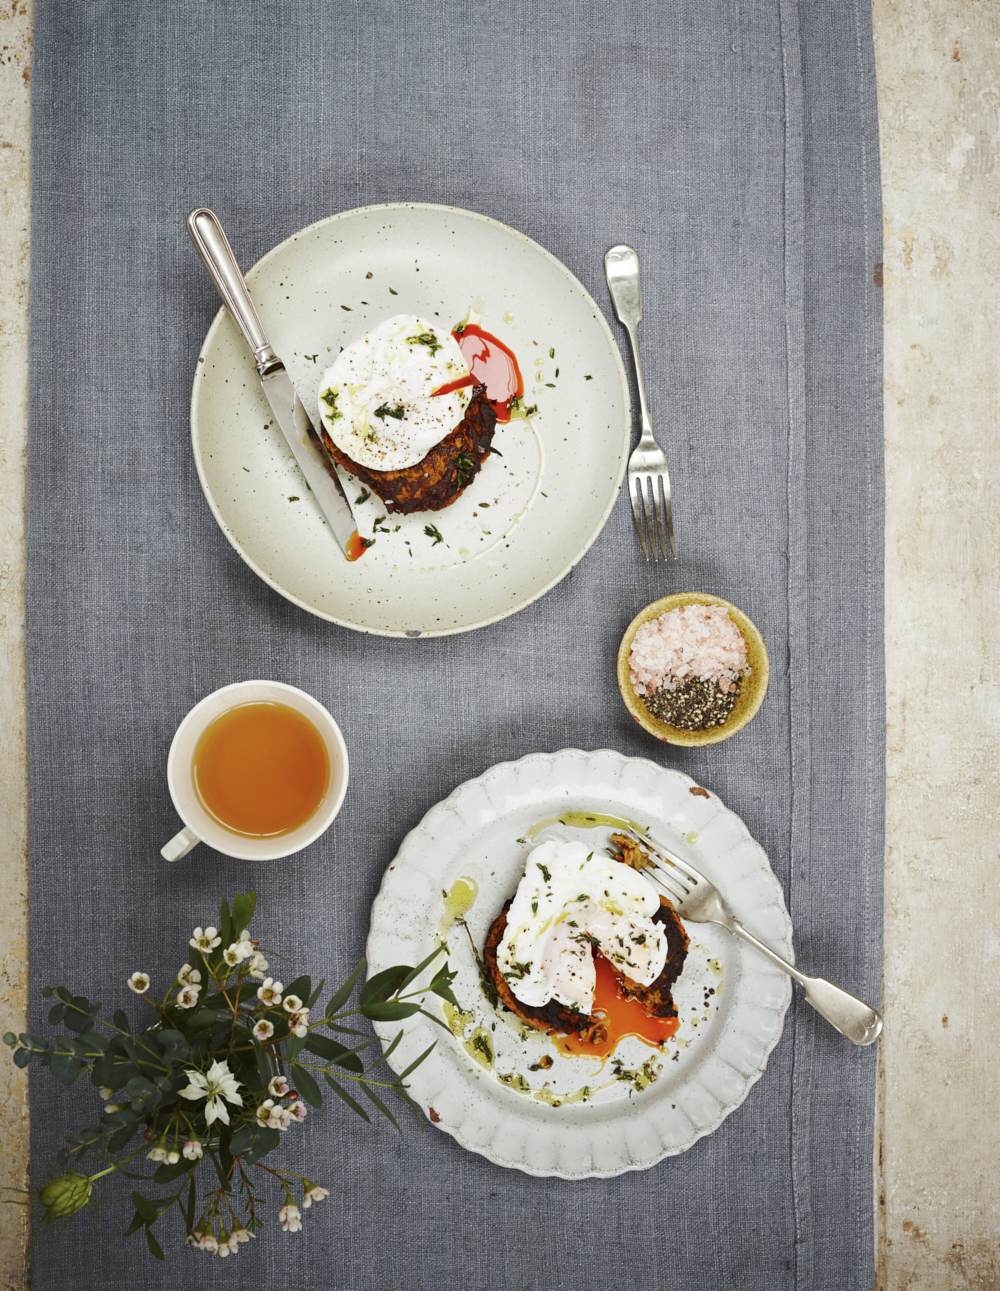 Sweet potato rosti served with a free range poached egg. Food photographer Joanna Henderson for Kyle Books